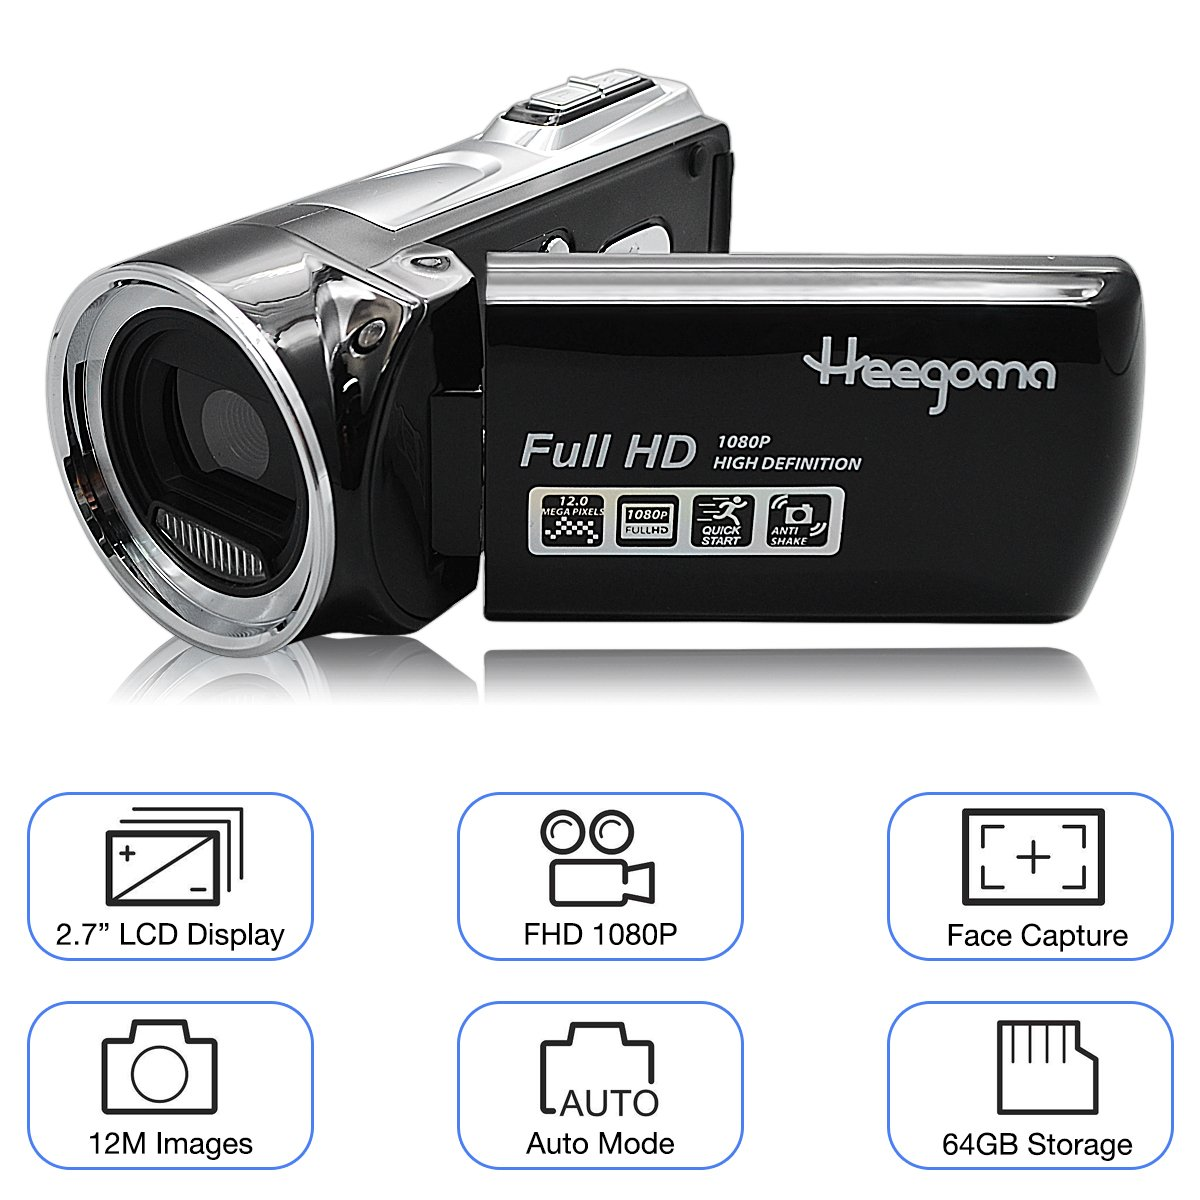 Heegomn Digital Video Camera FHD 1080P Camera Camcorders 2.7'' LCD 12MP Video Recorder with Wide Angle Lens, Black